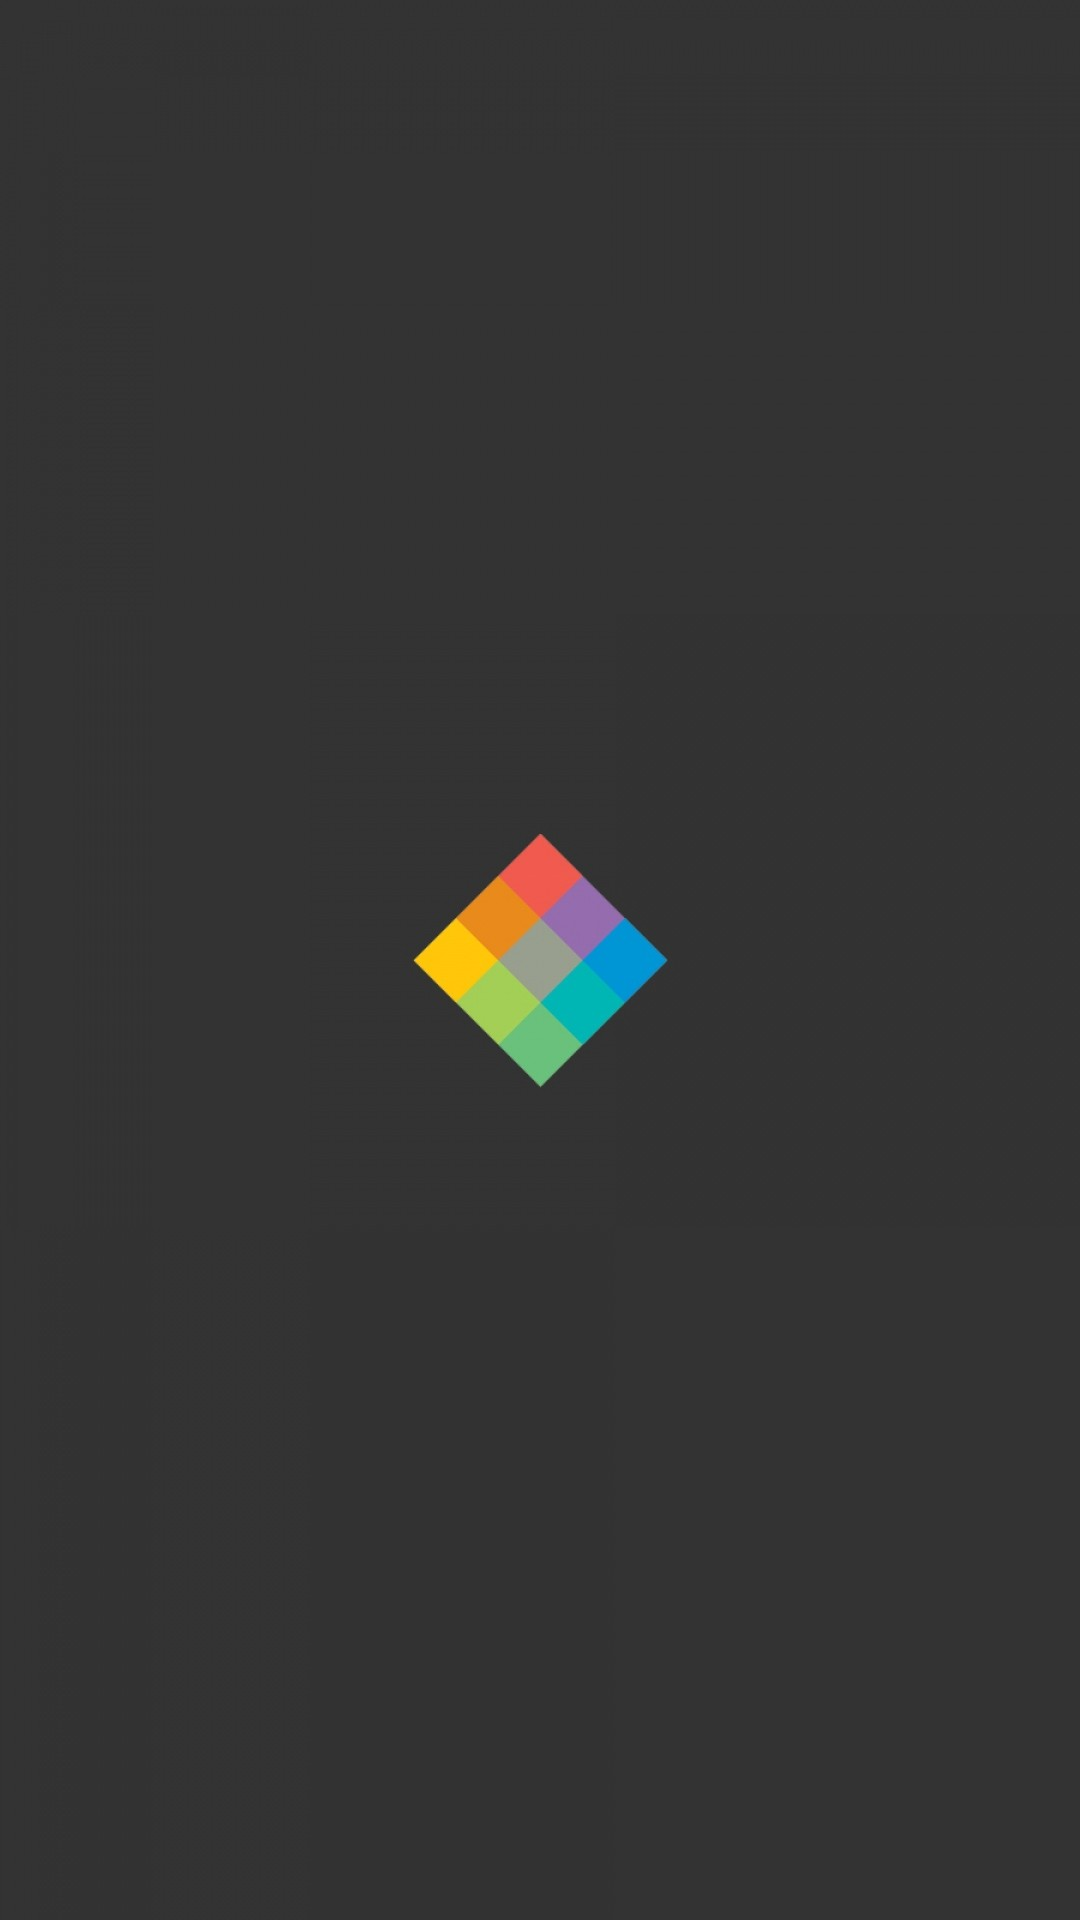 Flat Rubik's Cube. Tap to see Minimal iPhone 5/6 Wallpapers Collection |  mobile9